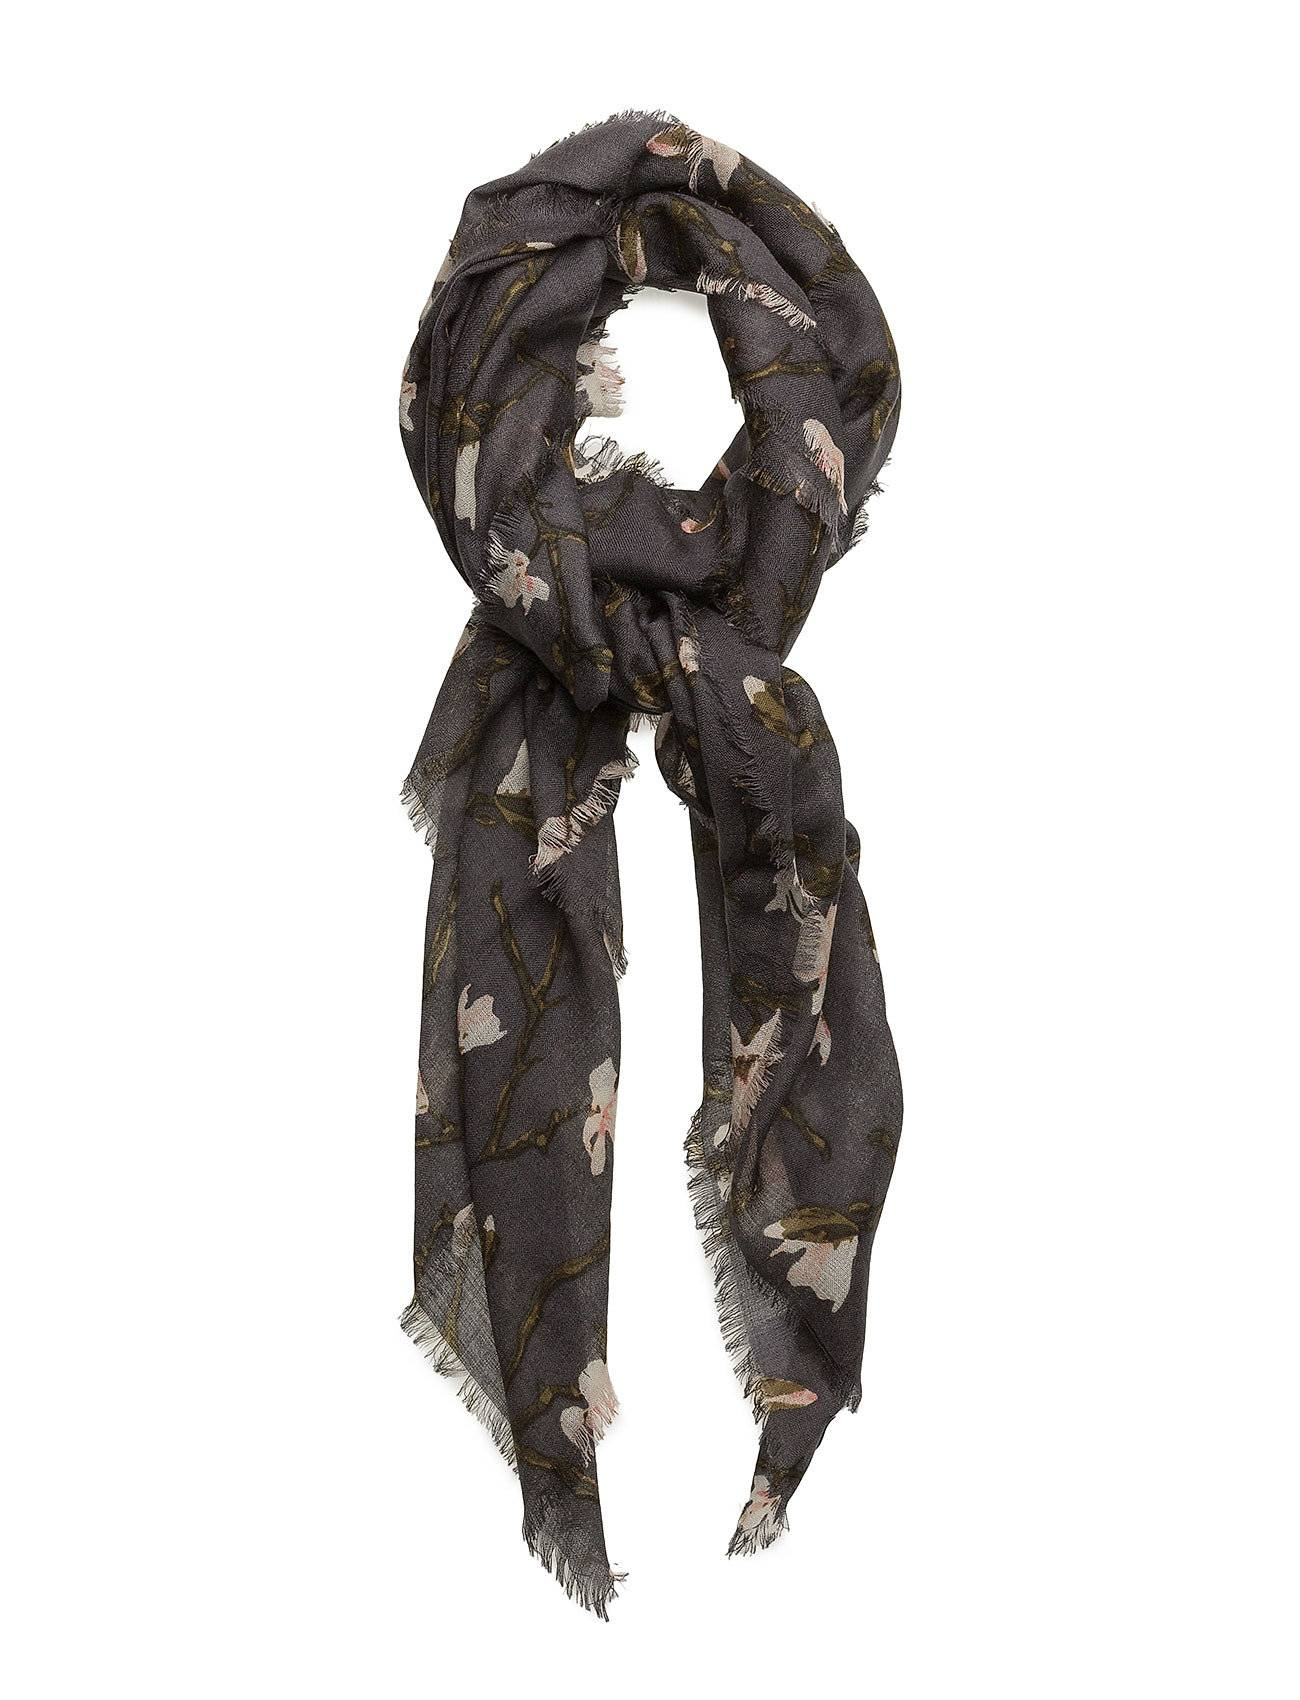 DAY et Day Deluxe Magno Scarf